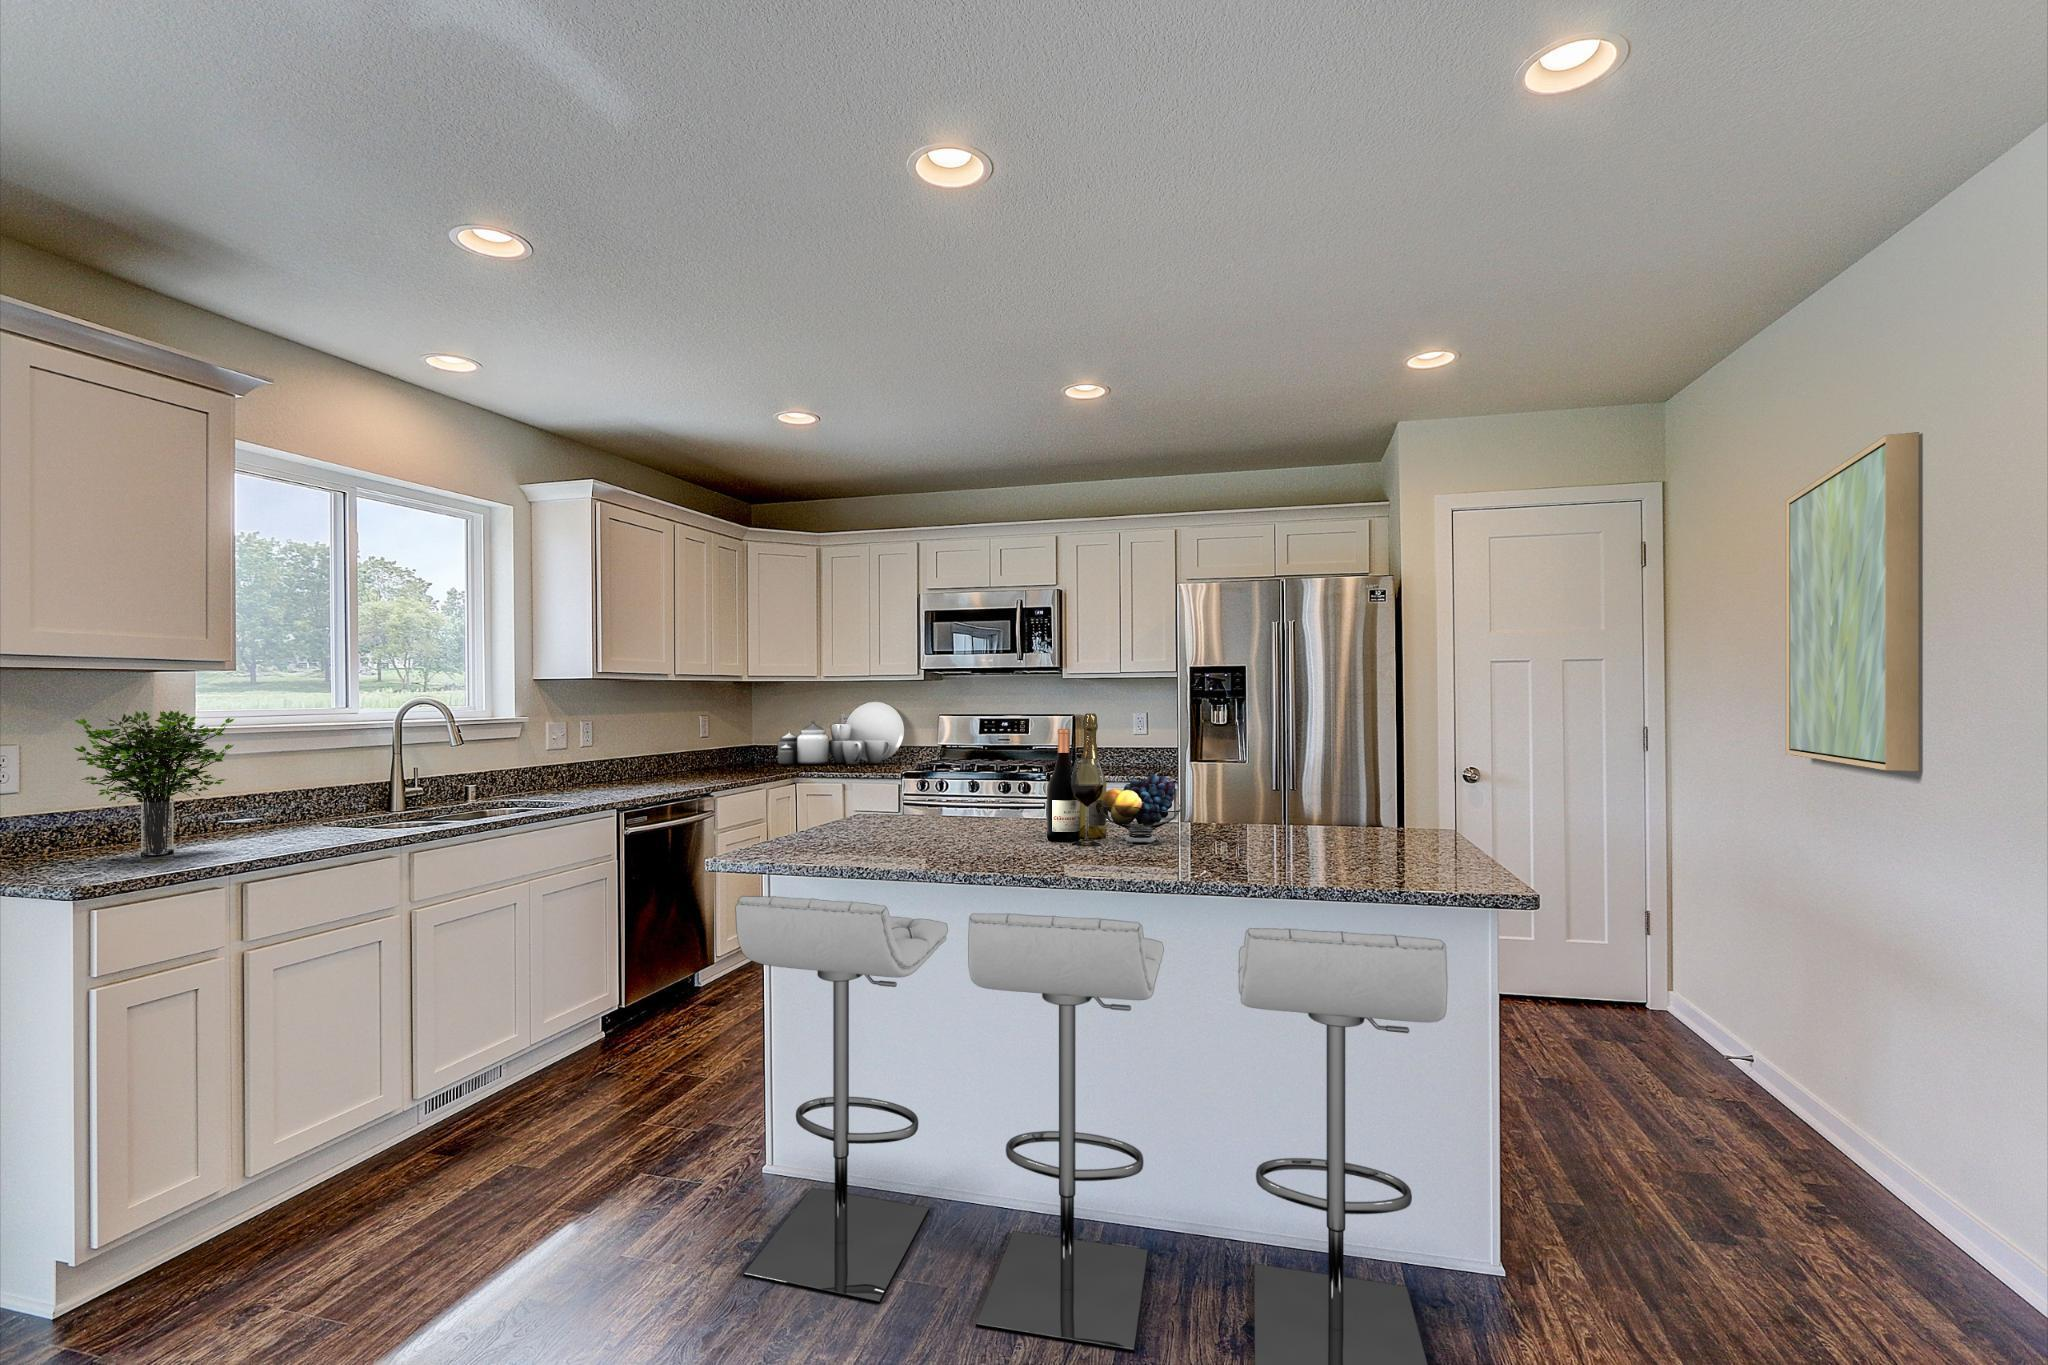 Kitchen featured in the Catalina By Harbor Homes in Washington-Fond du Lac, WI